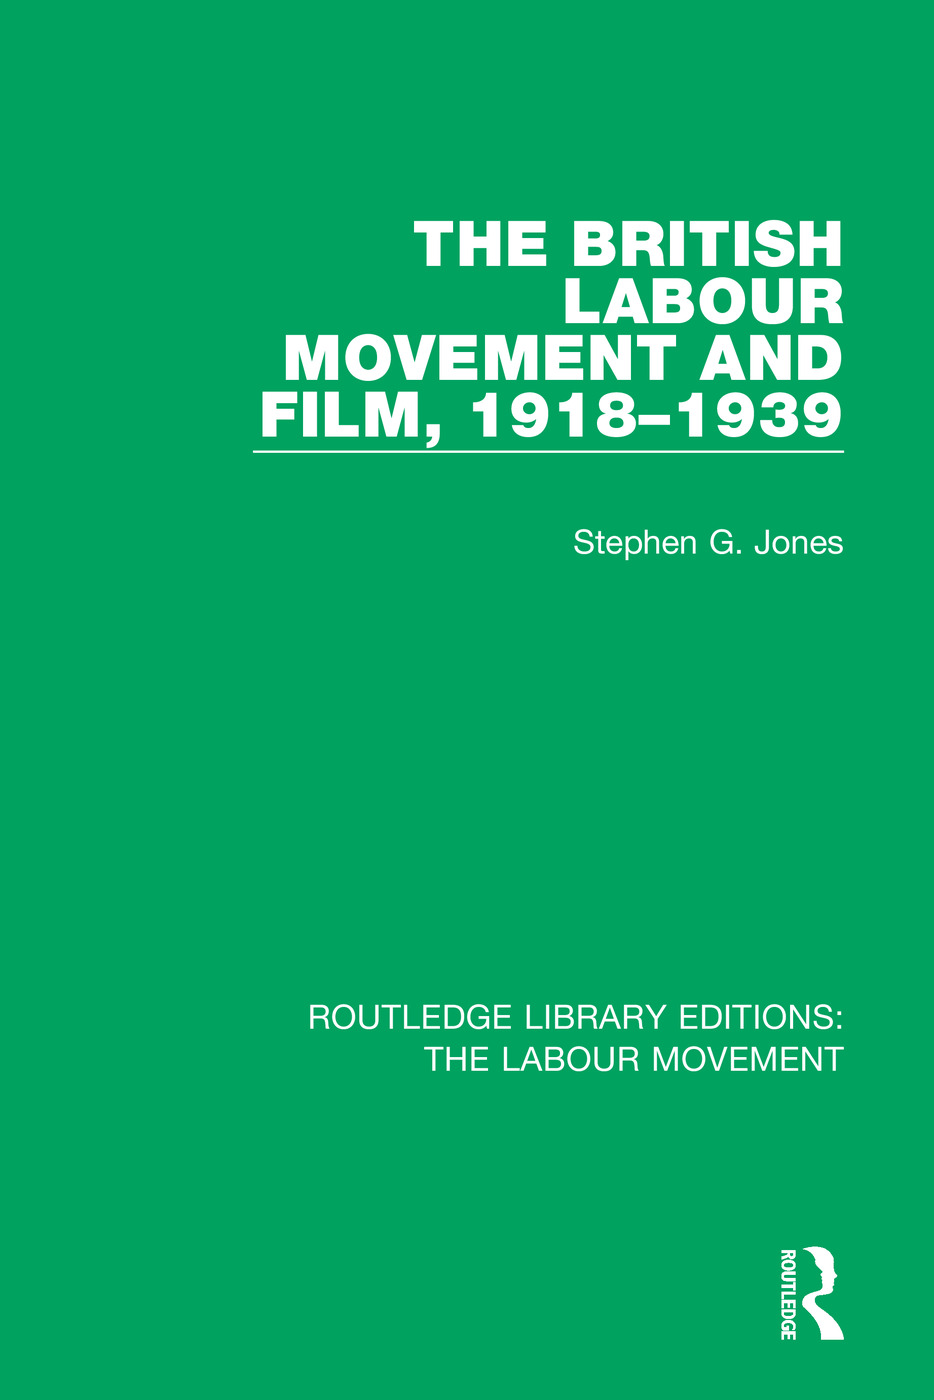 The British Labour Movement and Film, 1918-1939 book cover